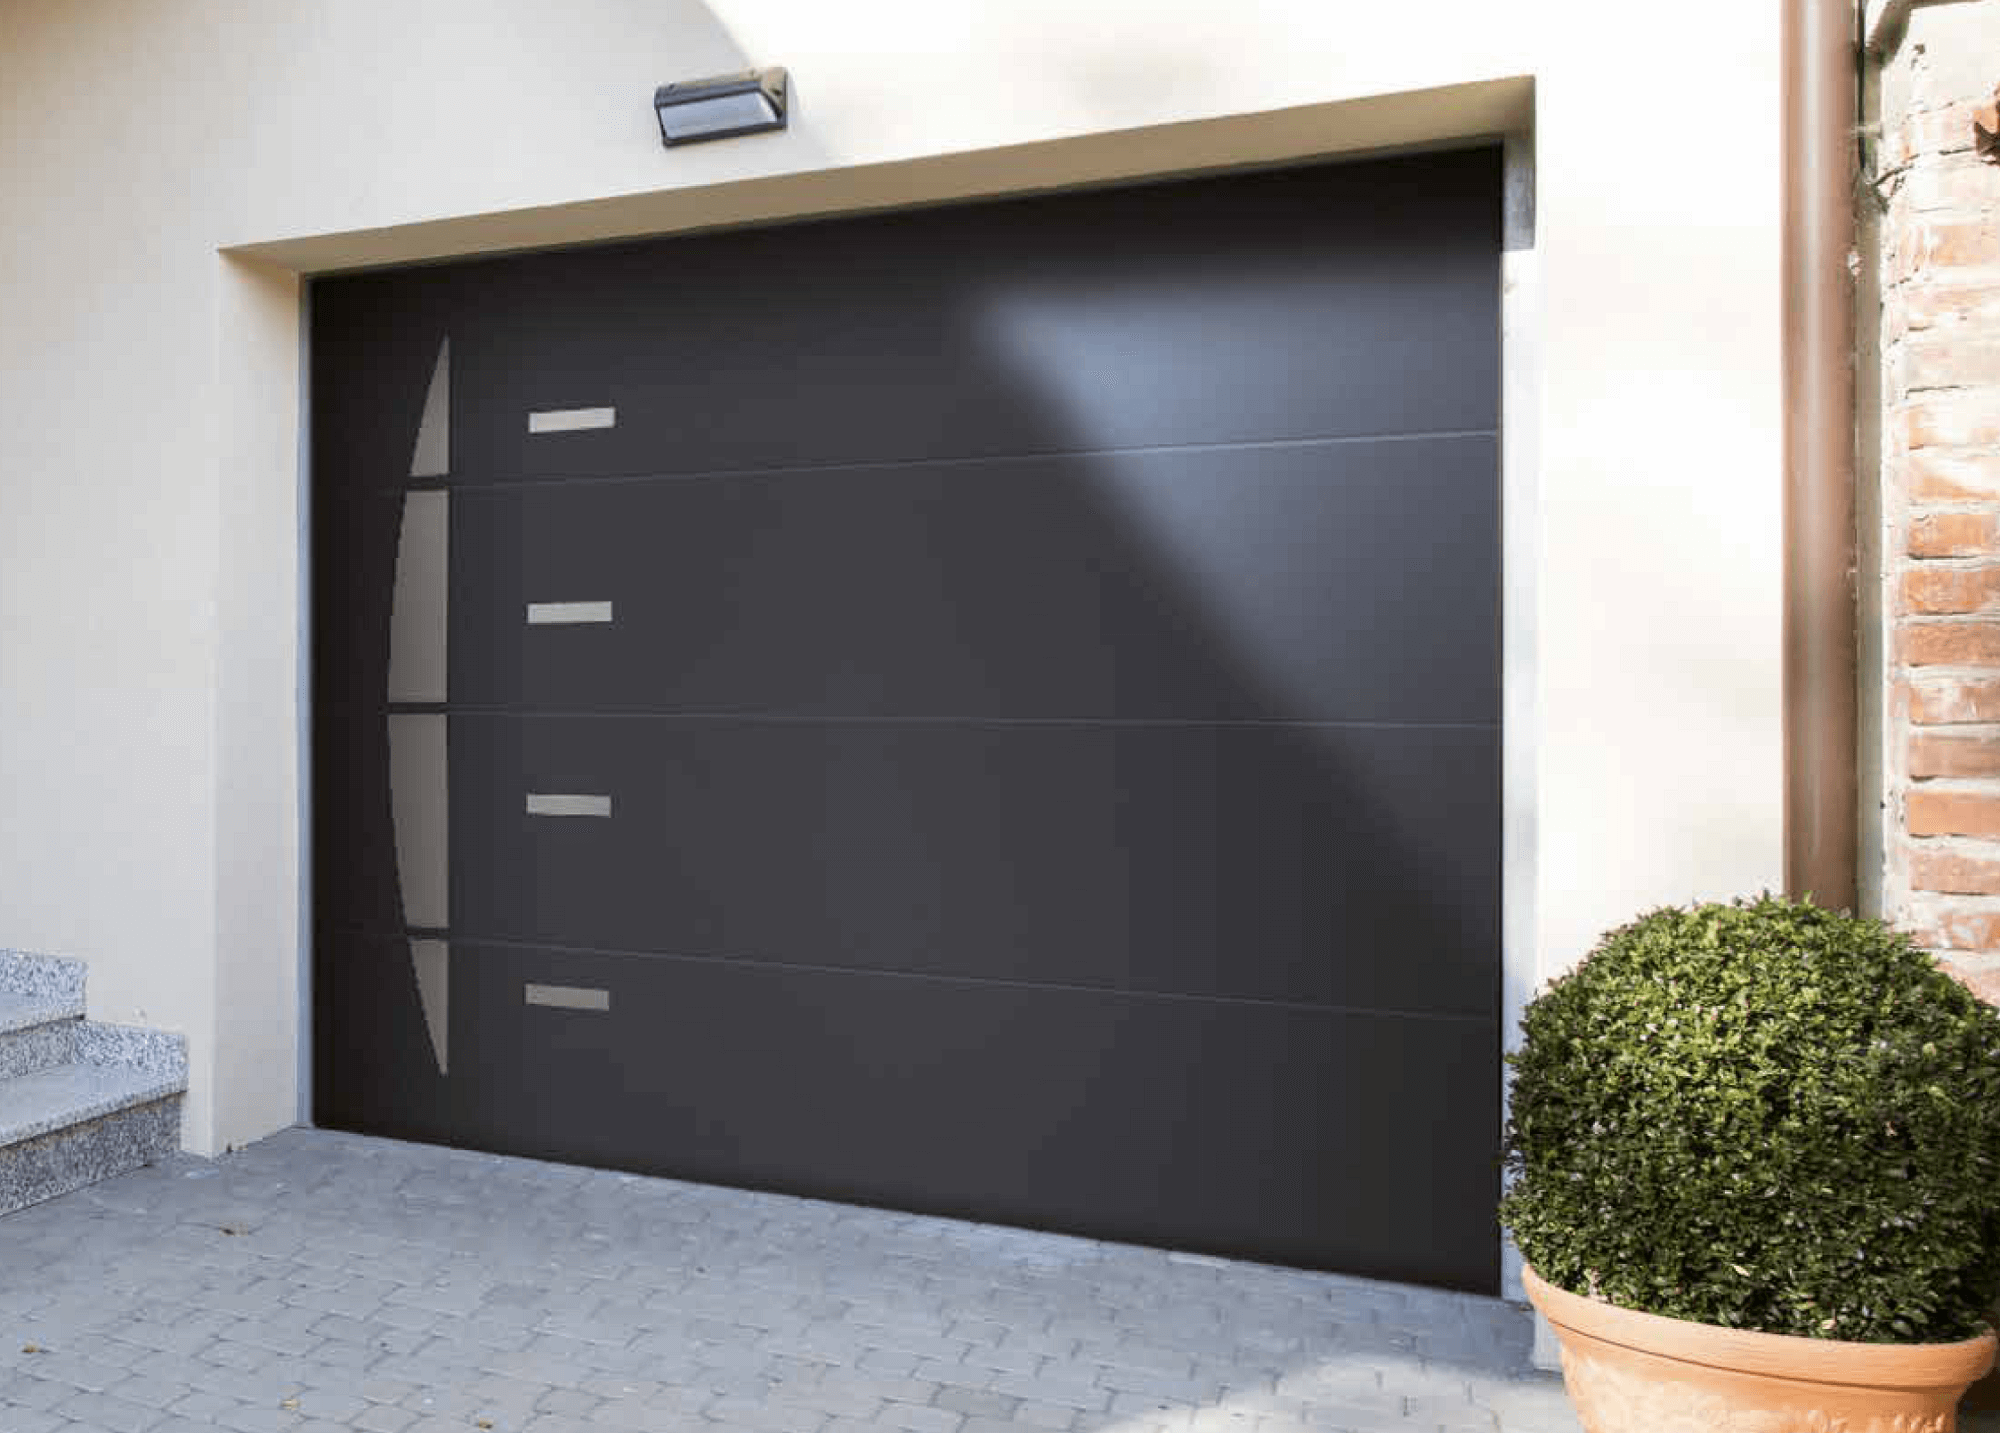 Porte de garage motoris e portes de garage sur mesure - Prix porte de garage sectionnelle motorisee avec portillon ...